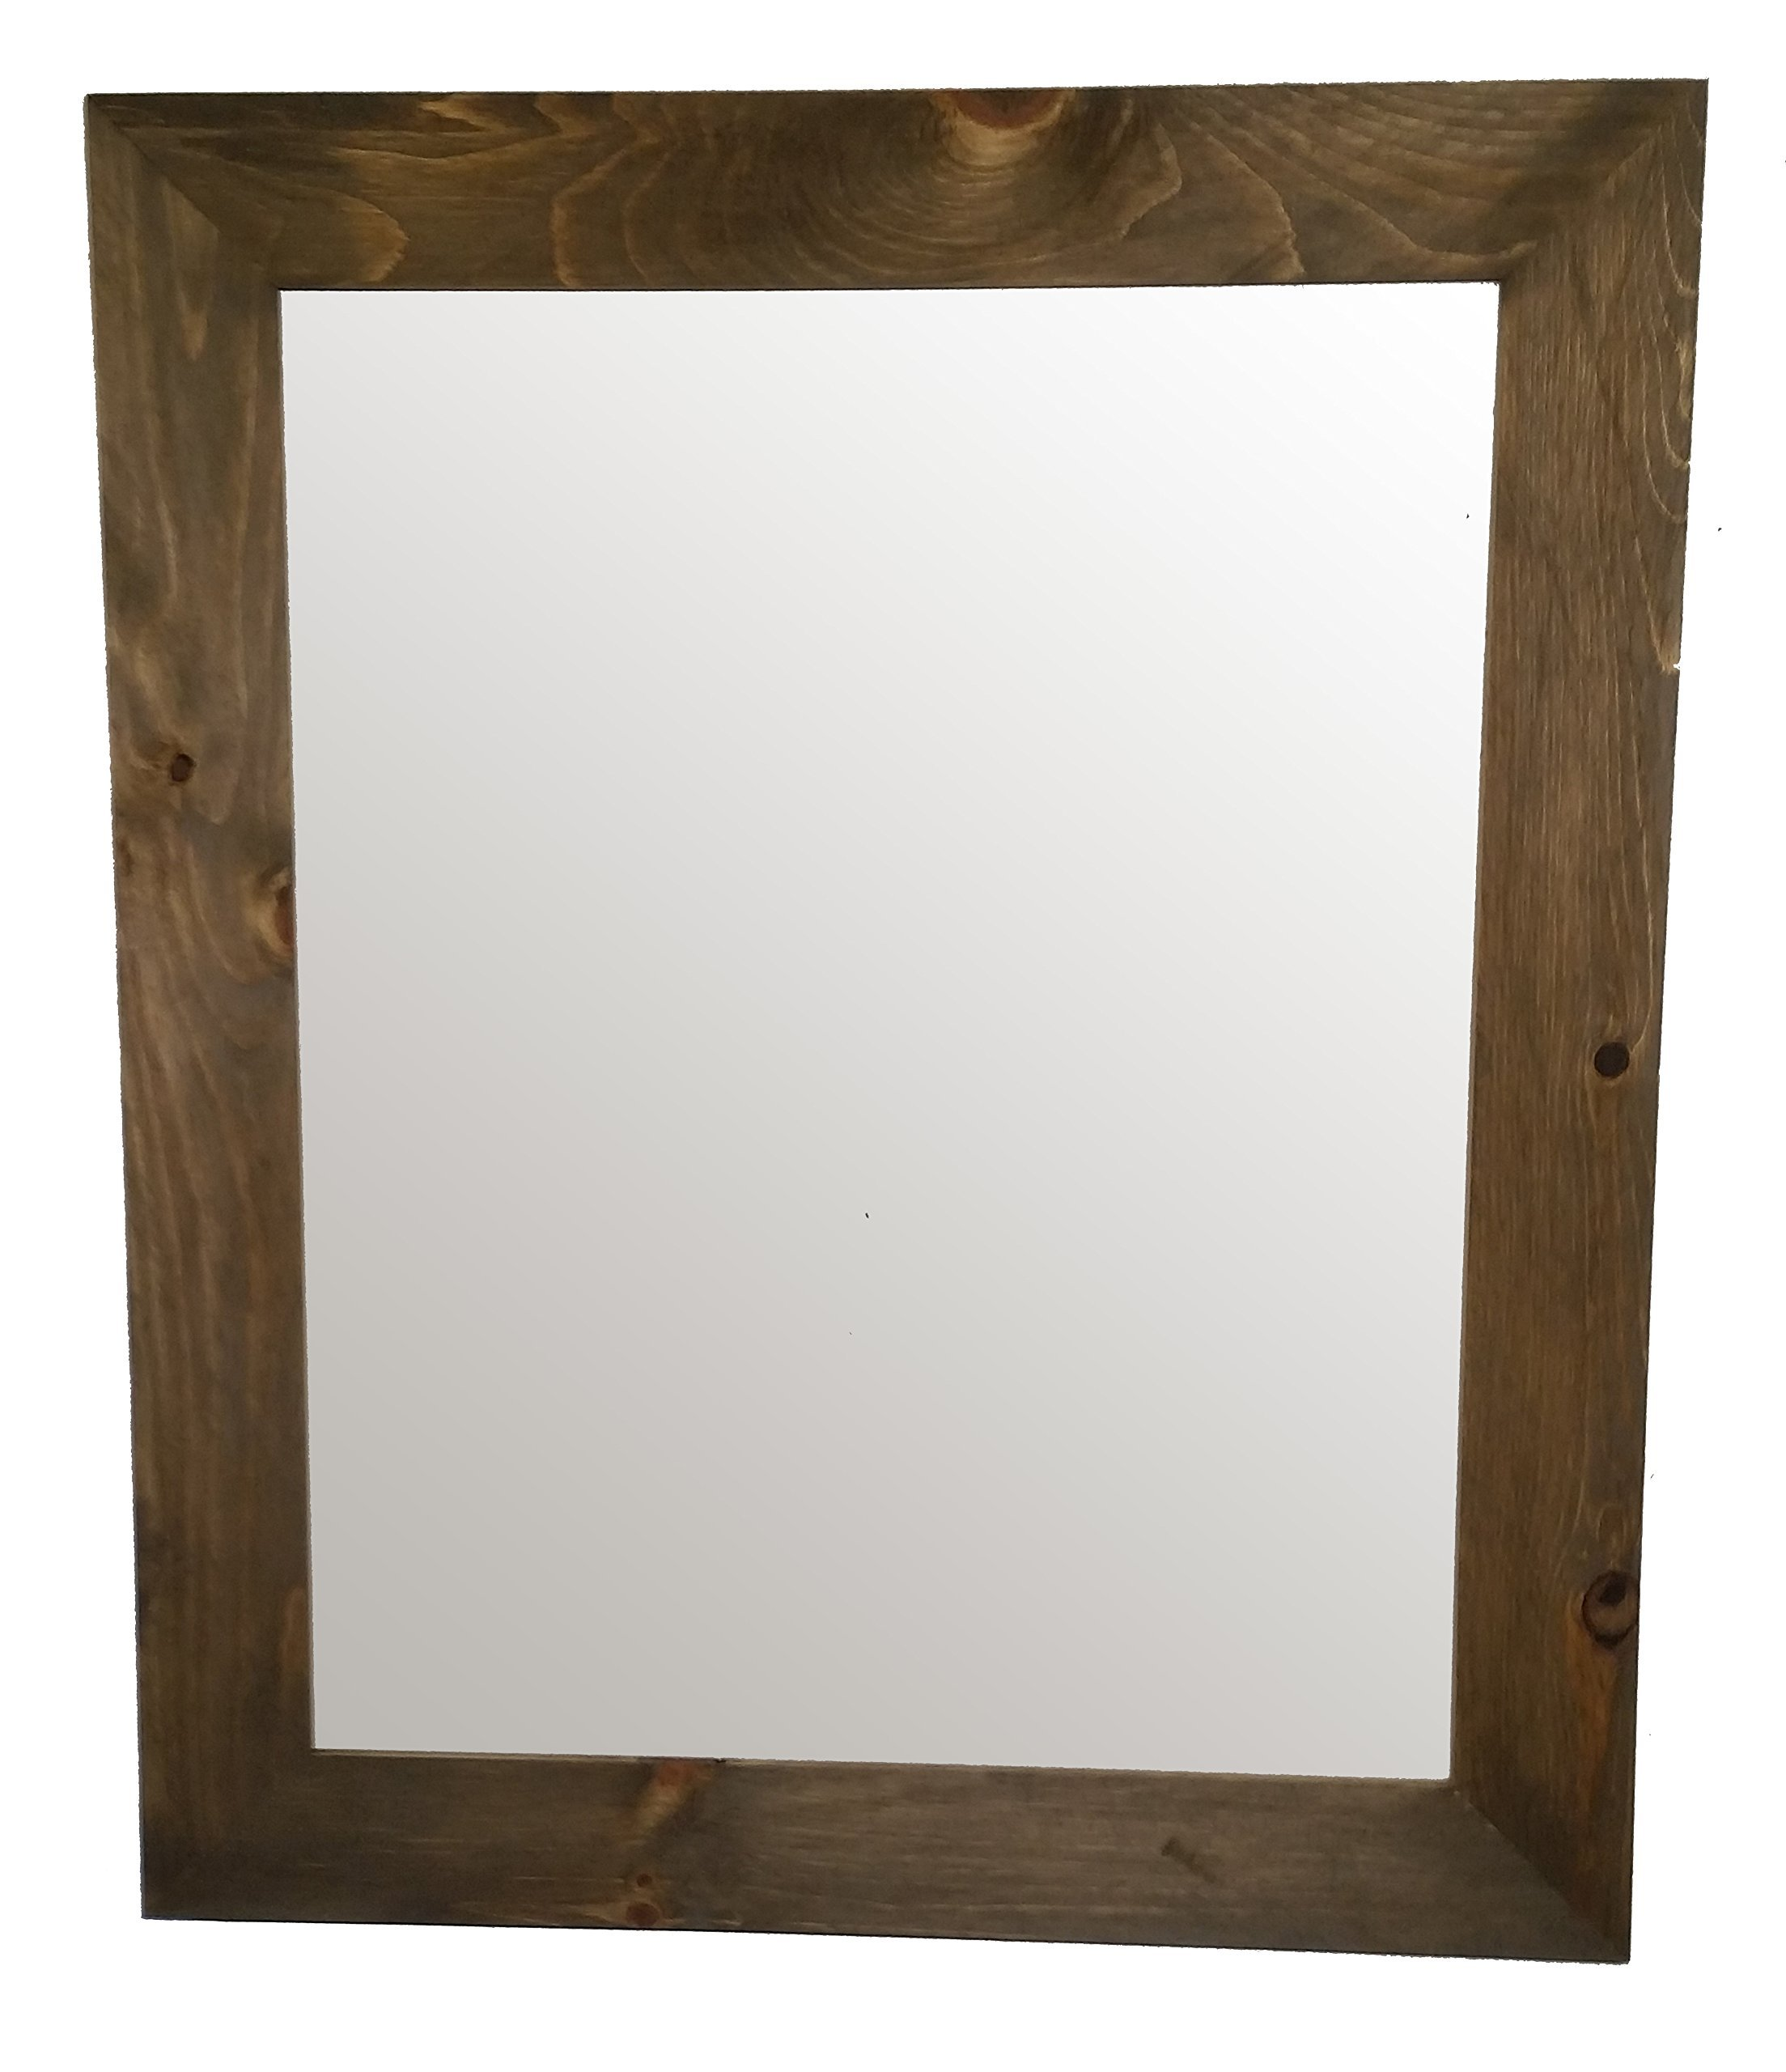 Shiplap Mirror 30 x 36 Vertical Driftwood Stain Reclaimed Wood Mirror - Large Wall Mirror - Rustic Modern Home - Home Decor - Mirror - Housewares - Woodwork - Frame - Stained Mirror by Renewed Décor